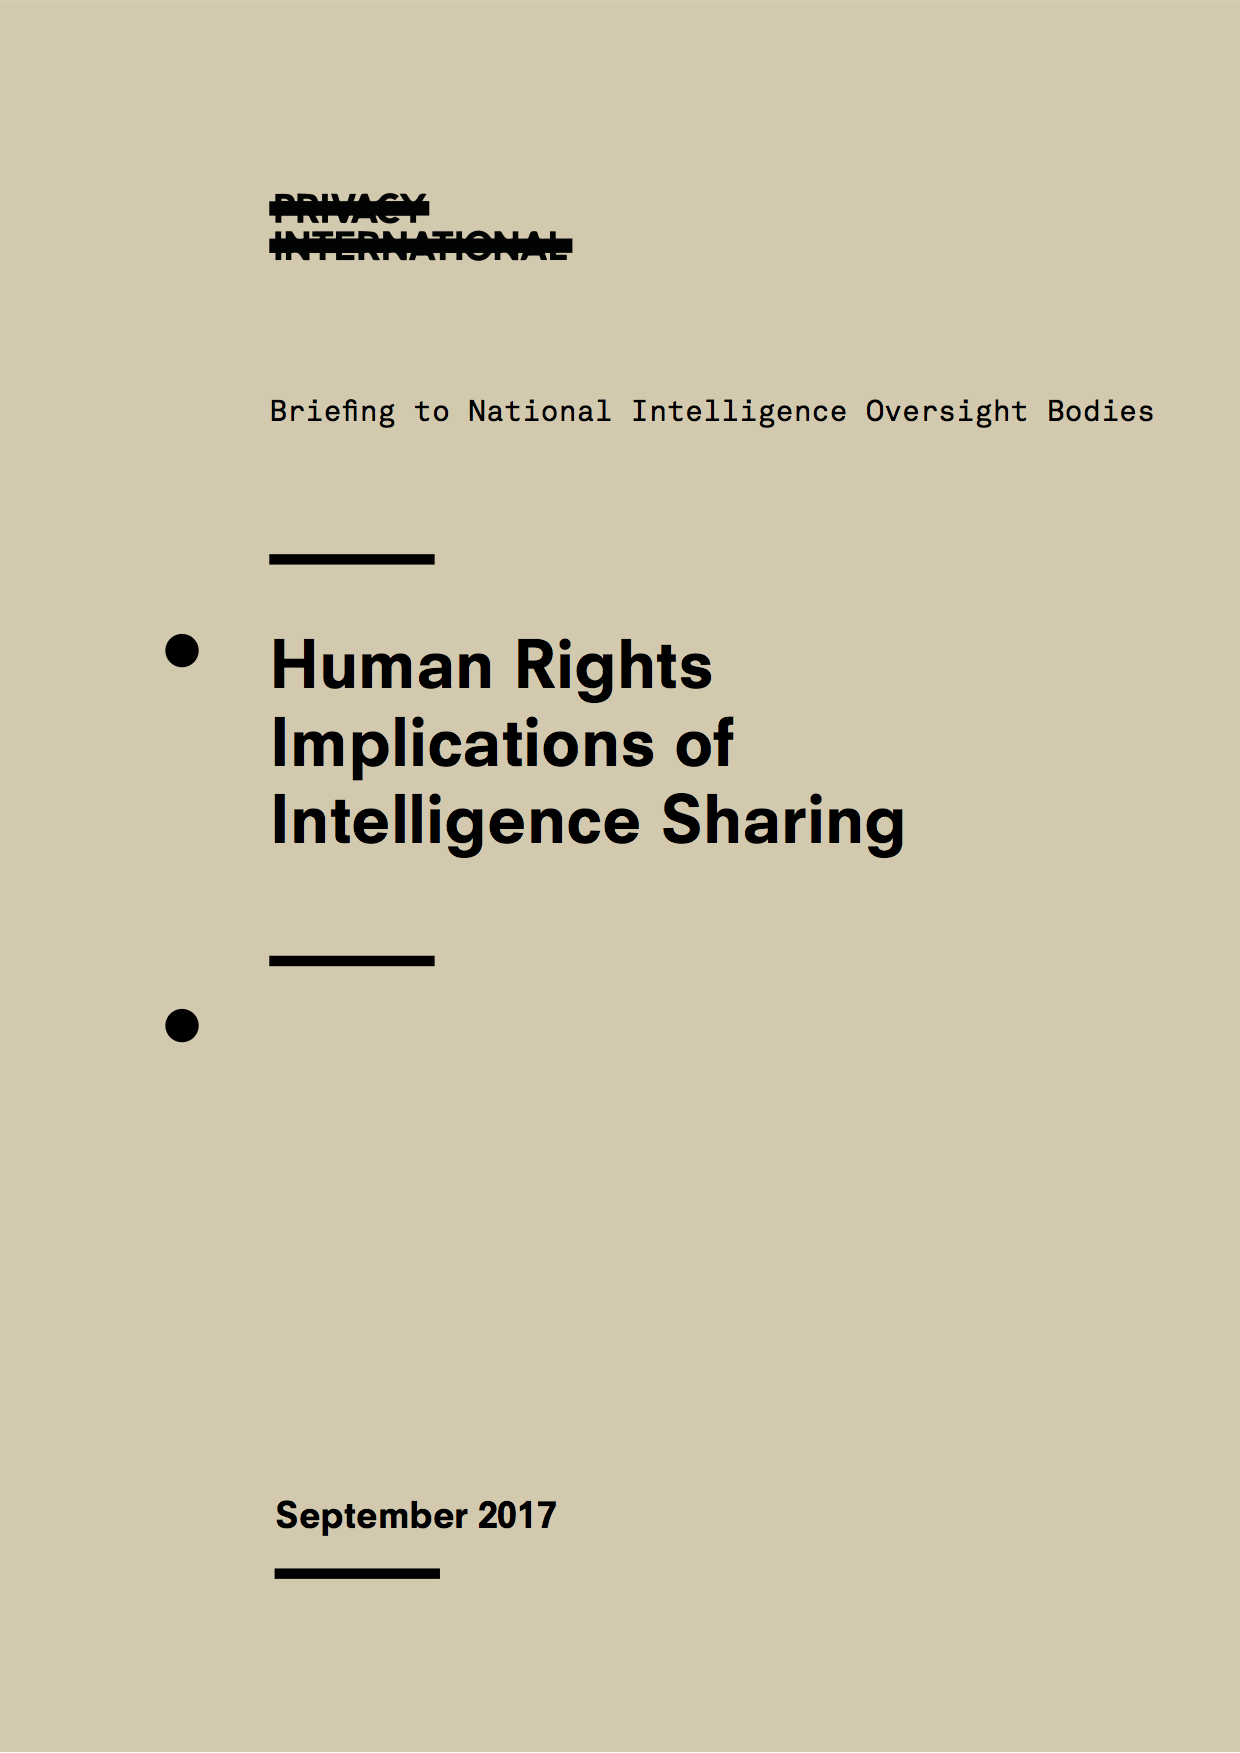 Privacy International Launches International Campaign For Greater Transparency Around Secretive Intelligence Sharing Activities Between Governments